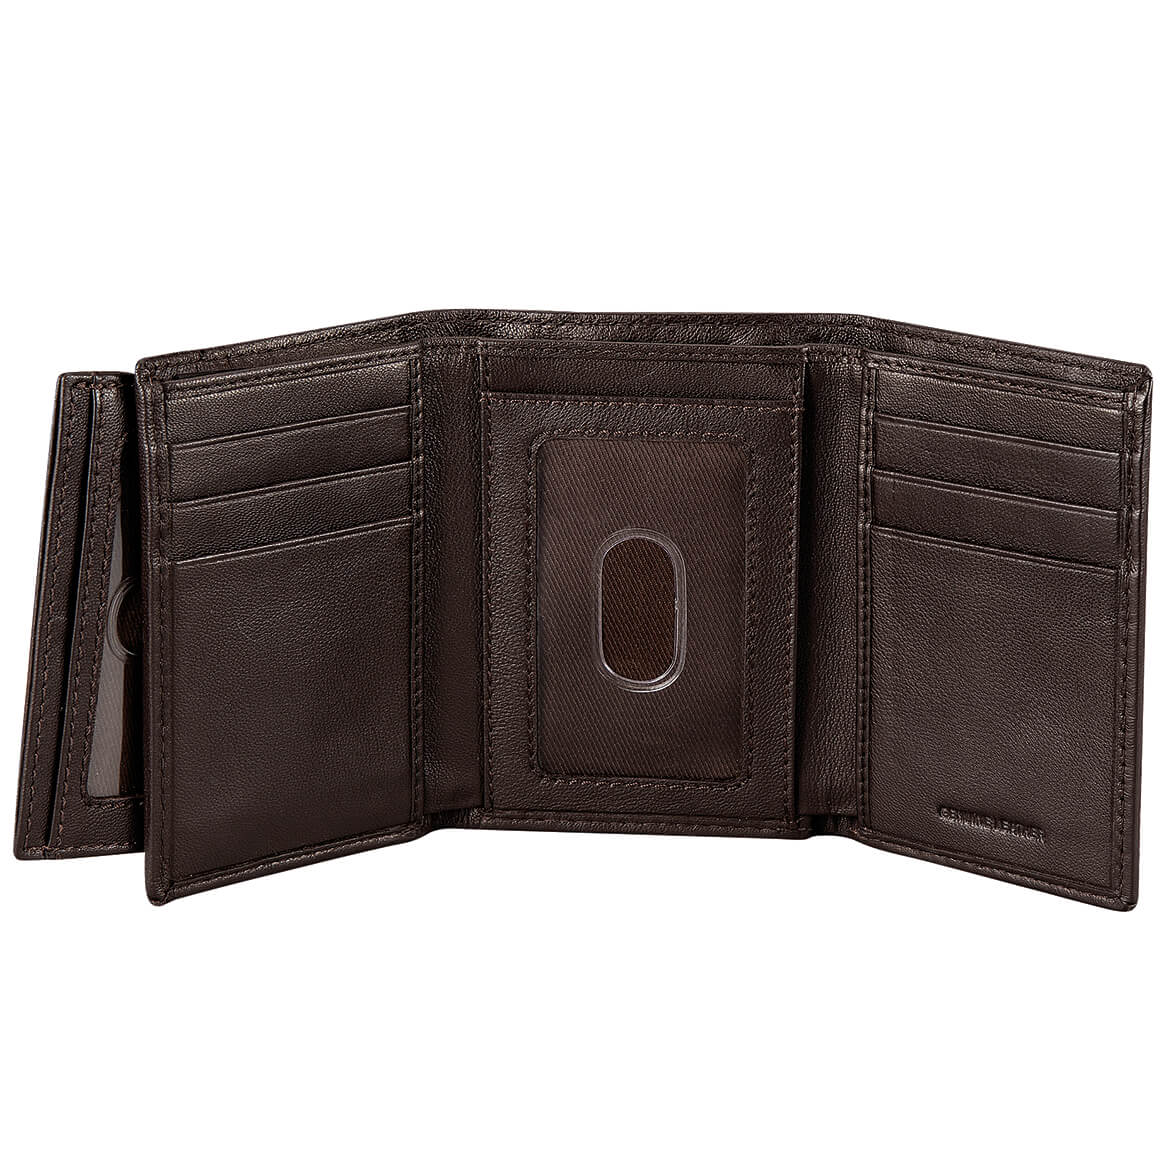 Samsonite Trifold RFID Leather Wallet-369309